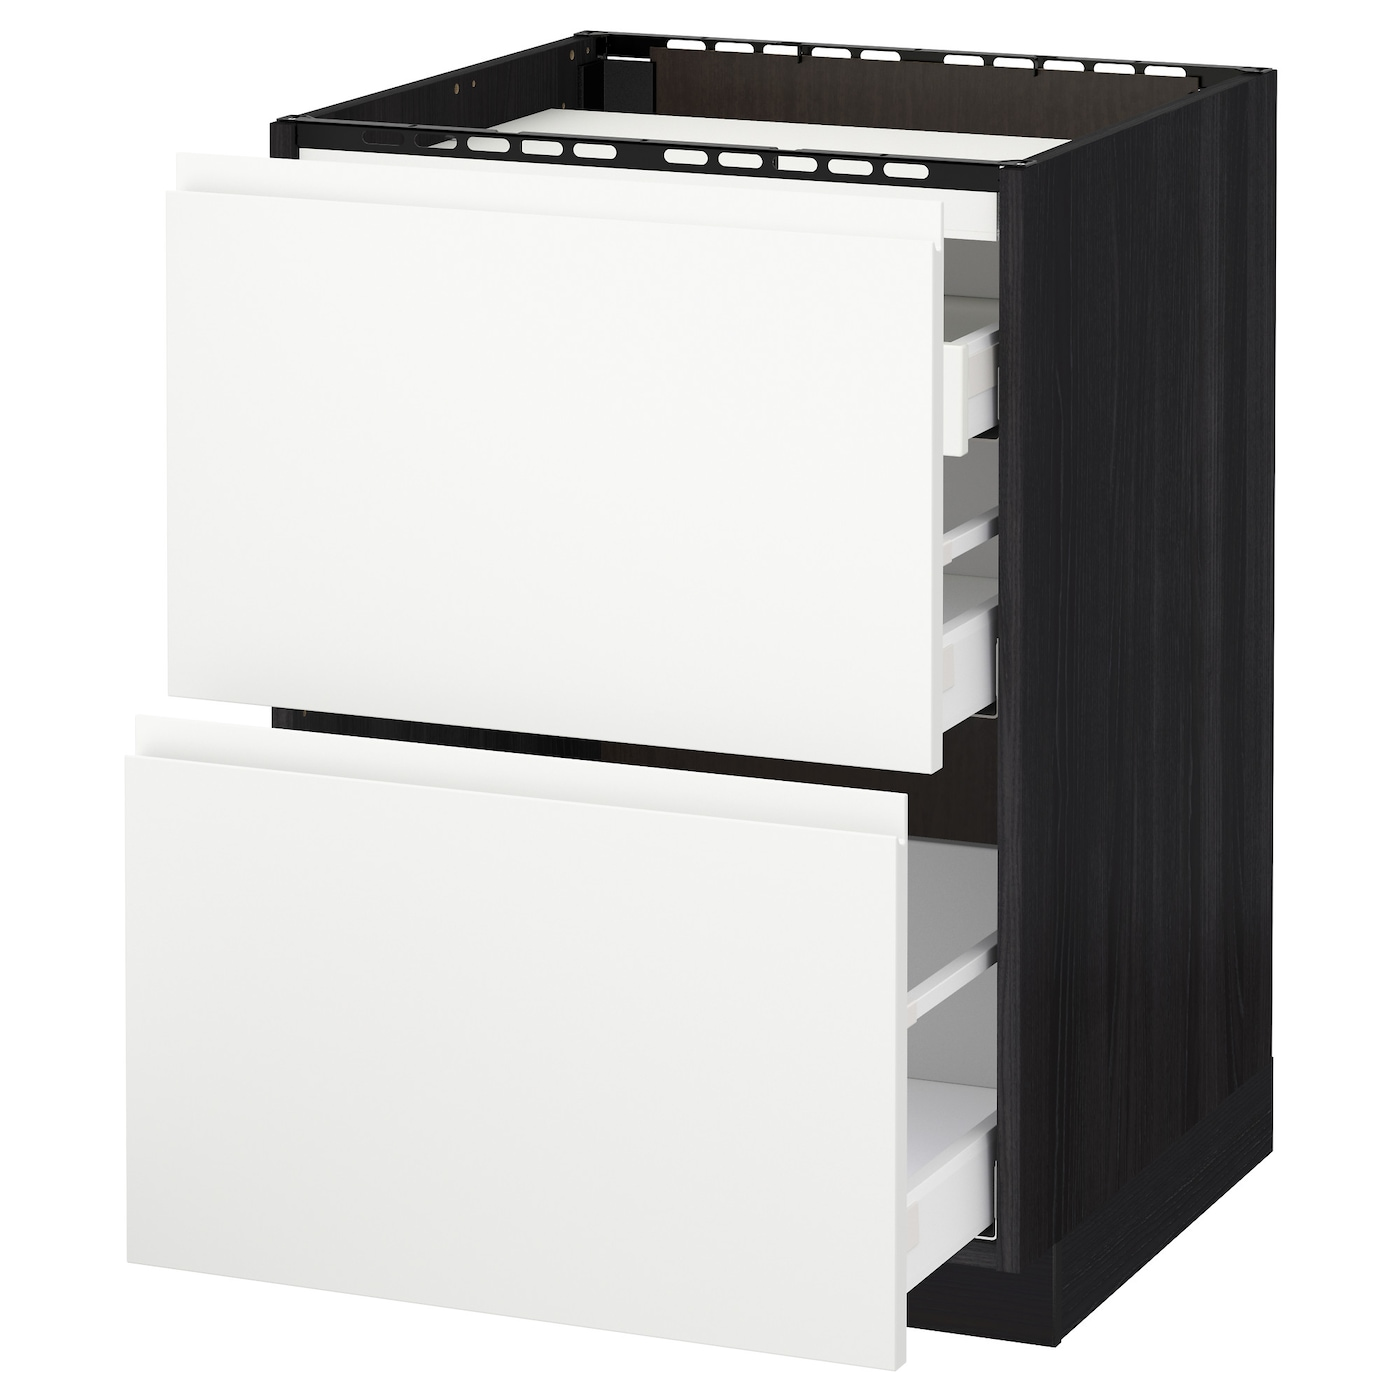 IKEA METOD/MAXIMERA base cab f hob/2 fronts/3 drawers Smooth-running drawers with stop.